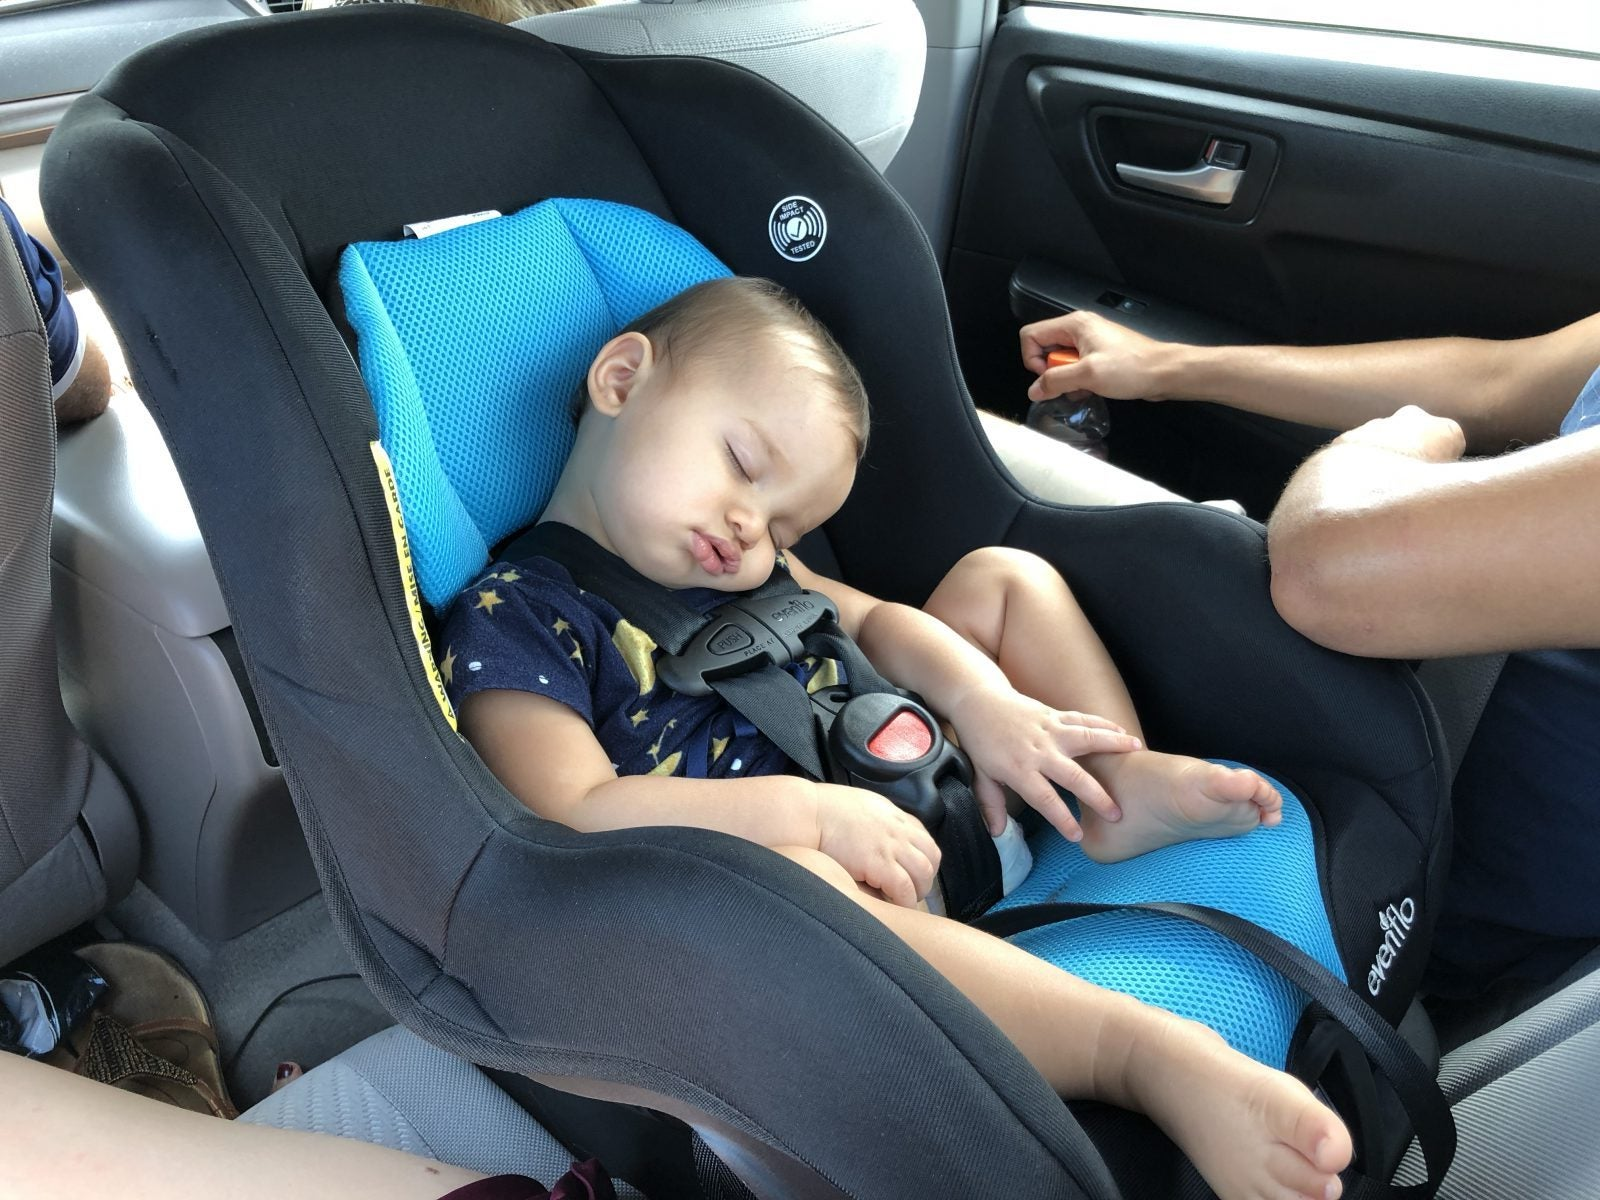 The Best Travel Car Seat (as Rated by a Frequent-Flyer Mom!)